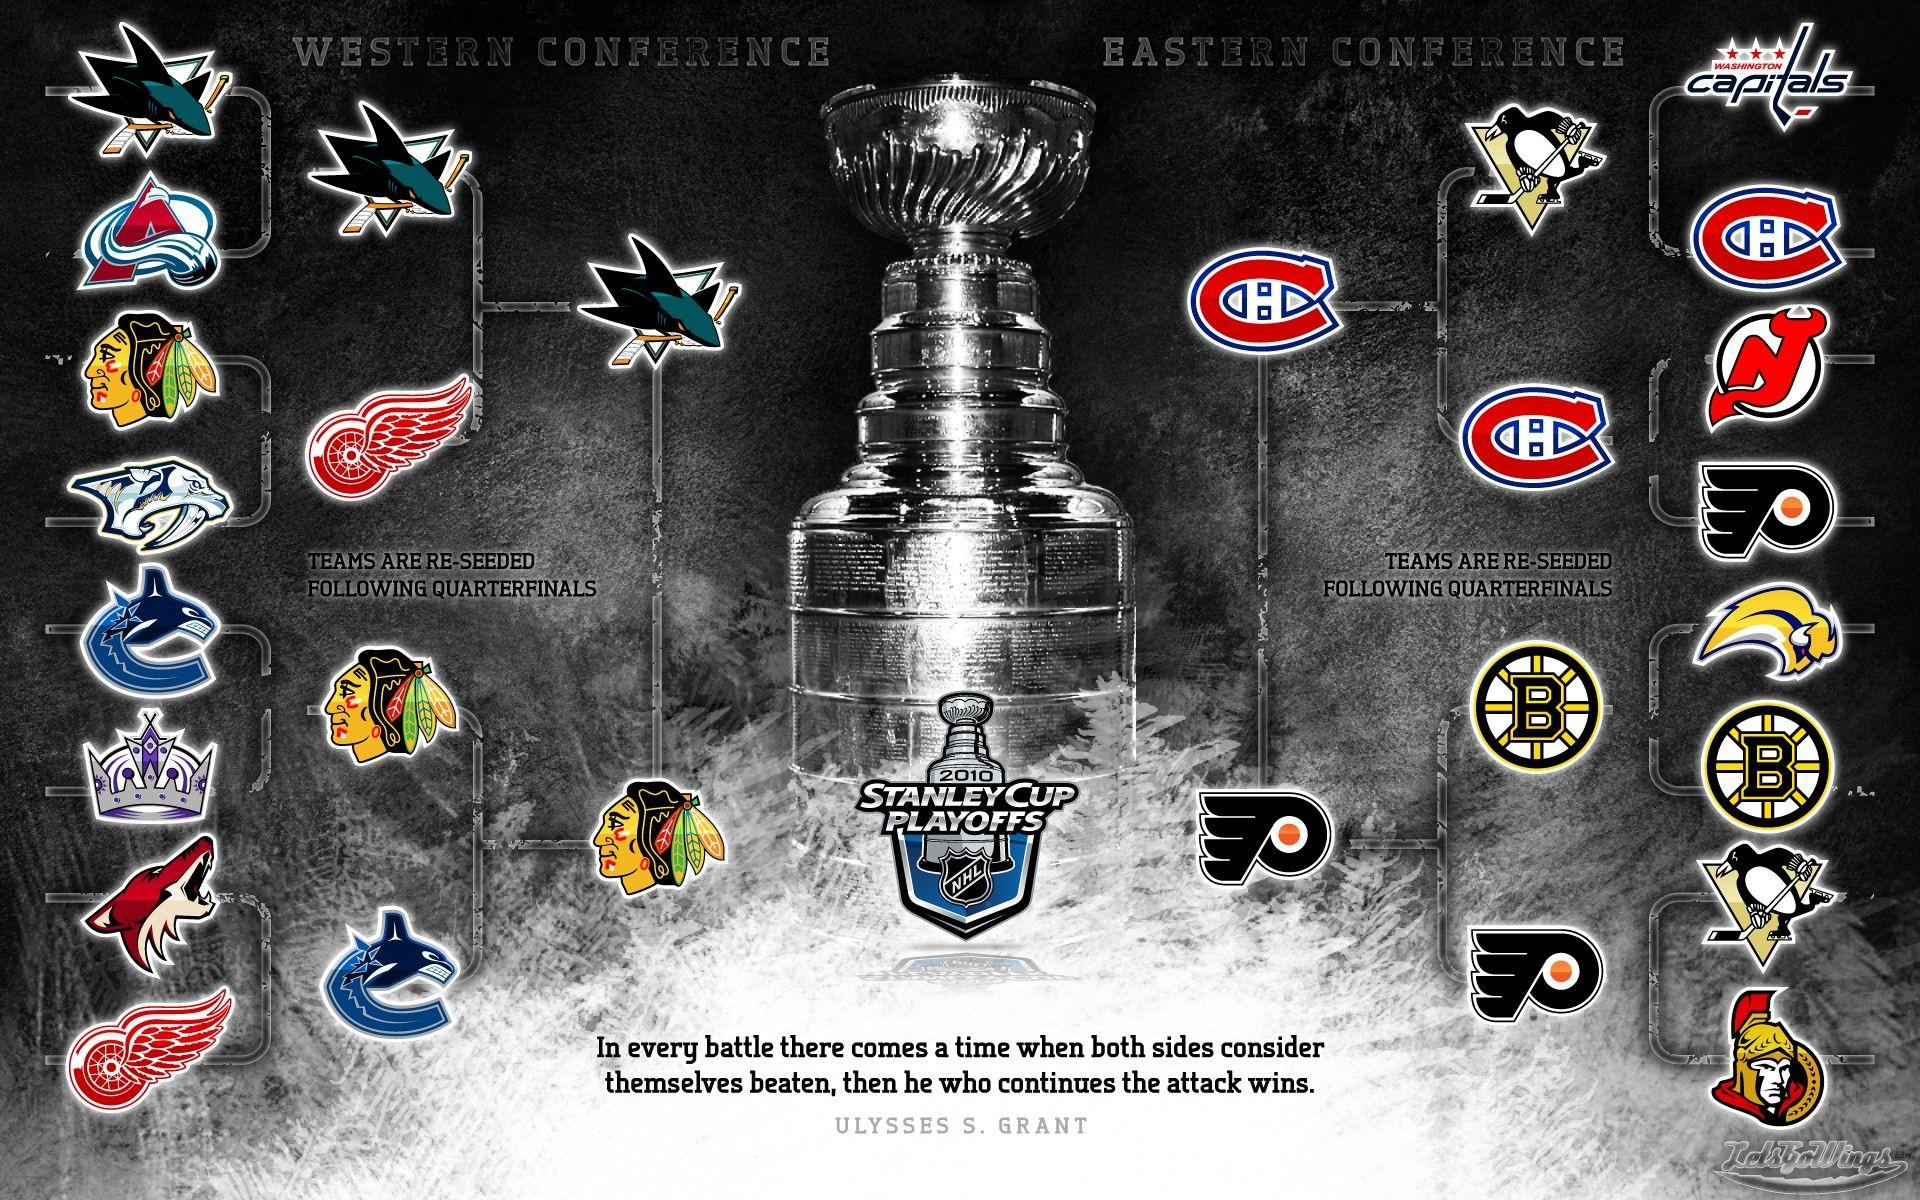 HD wallpapers nhl desktop backgrounds hdca3dd.ml